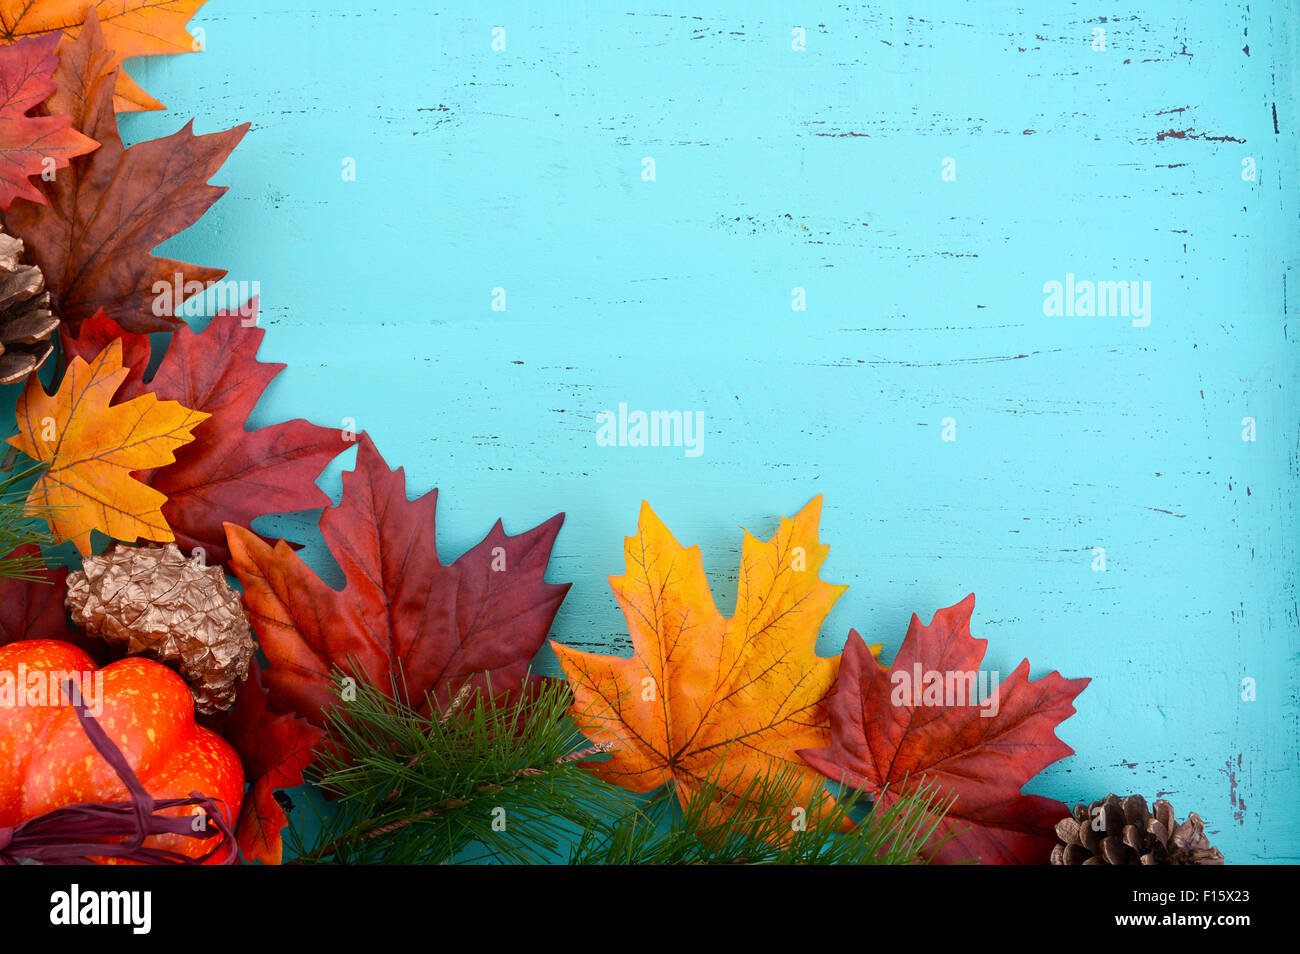 Autumn Fall Rustic Background On Aqua Blue Vintage Distressed Wood With Leaves And Decorations